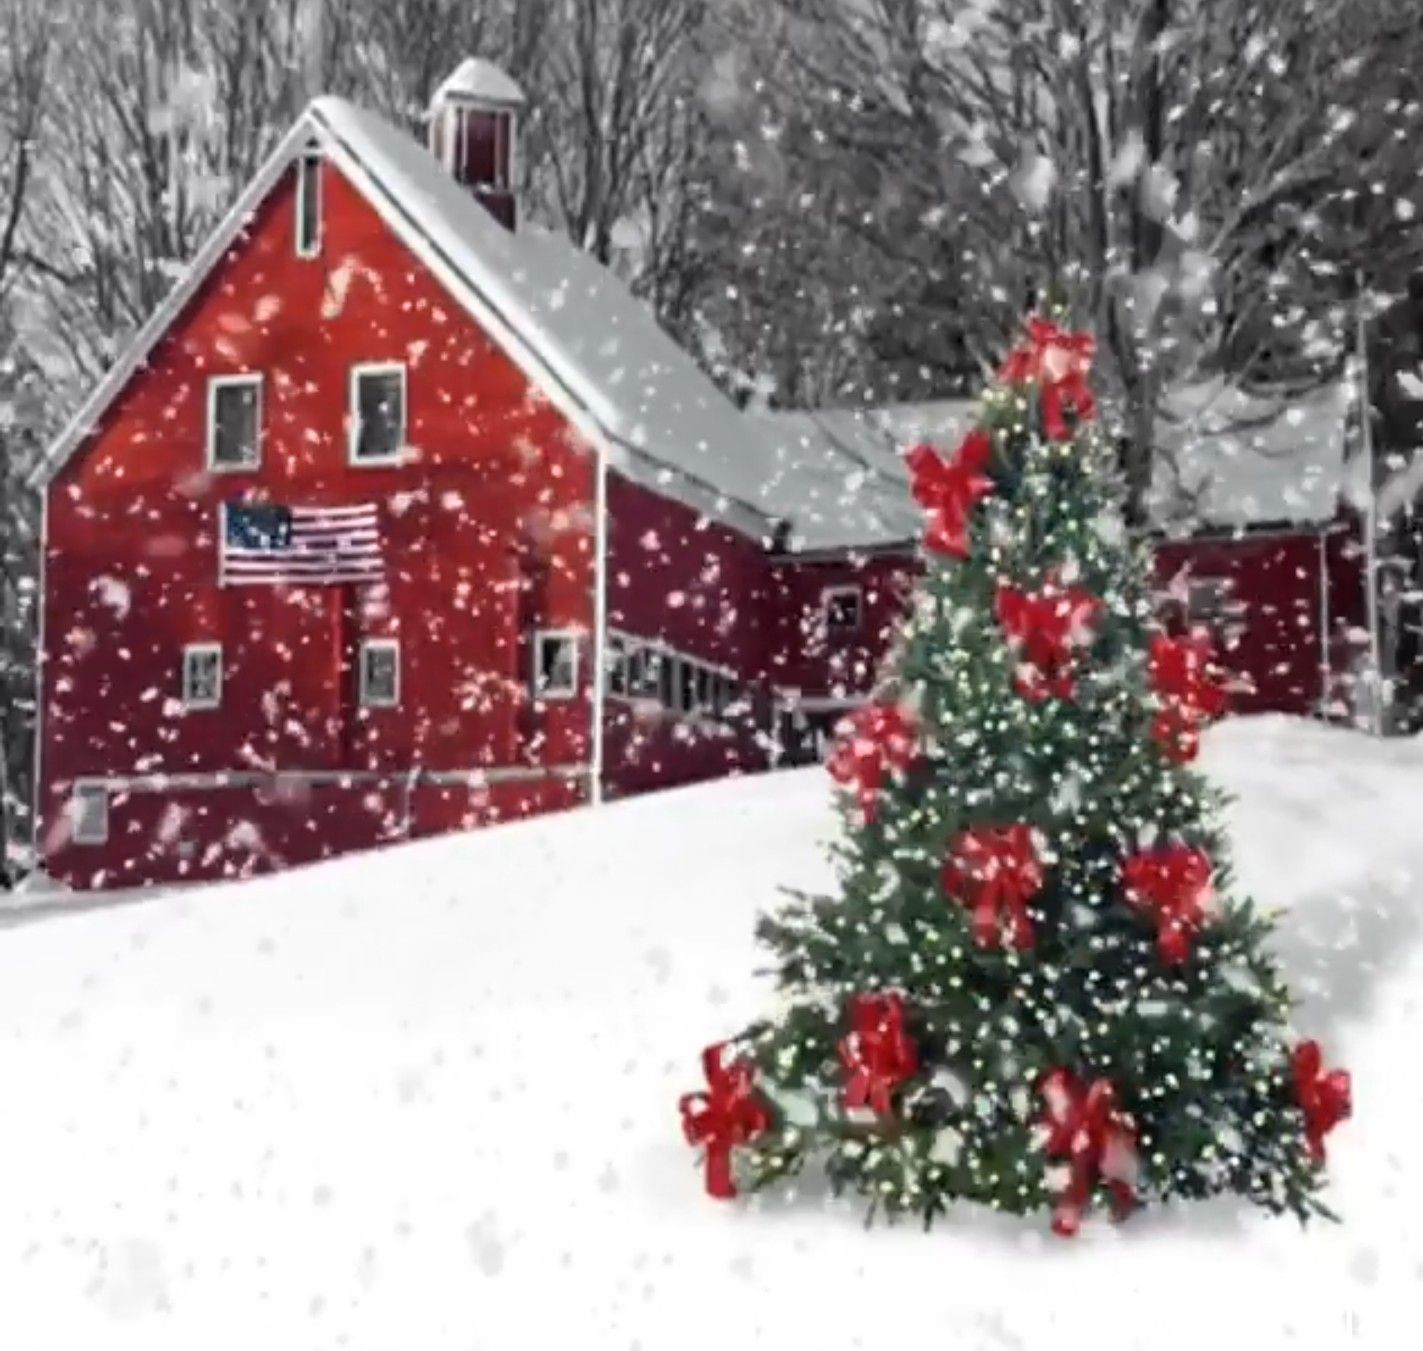 Pin By Phyllis Bishop On Snow - Pinterest - Winter,